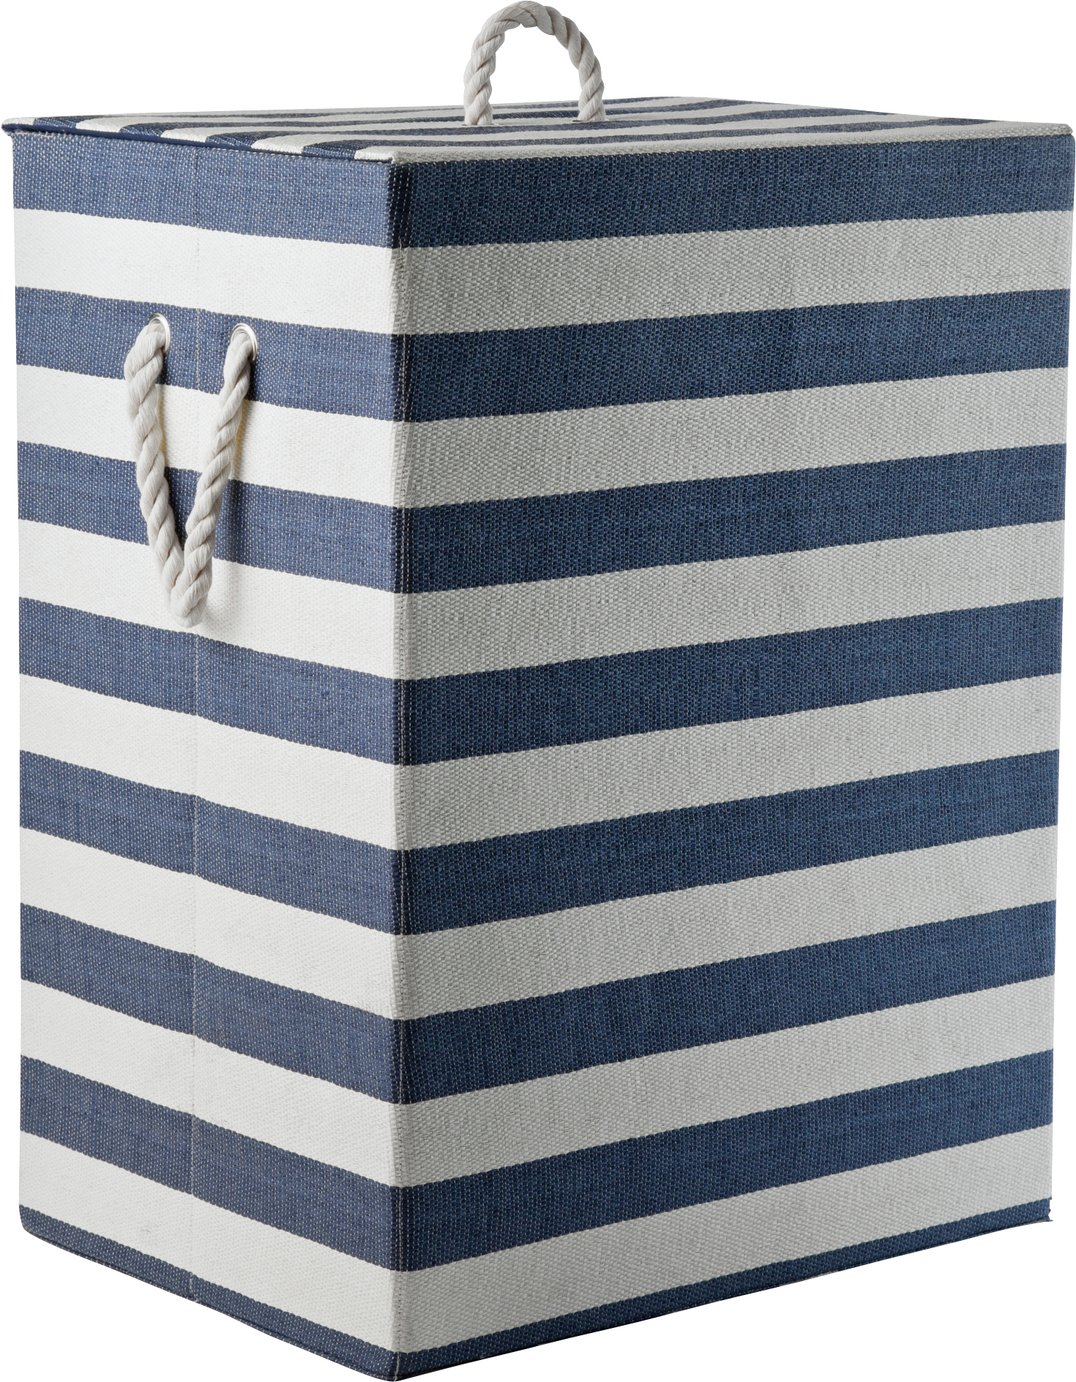 home-laundry-box-blue-white